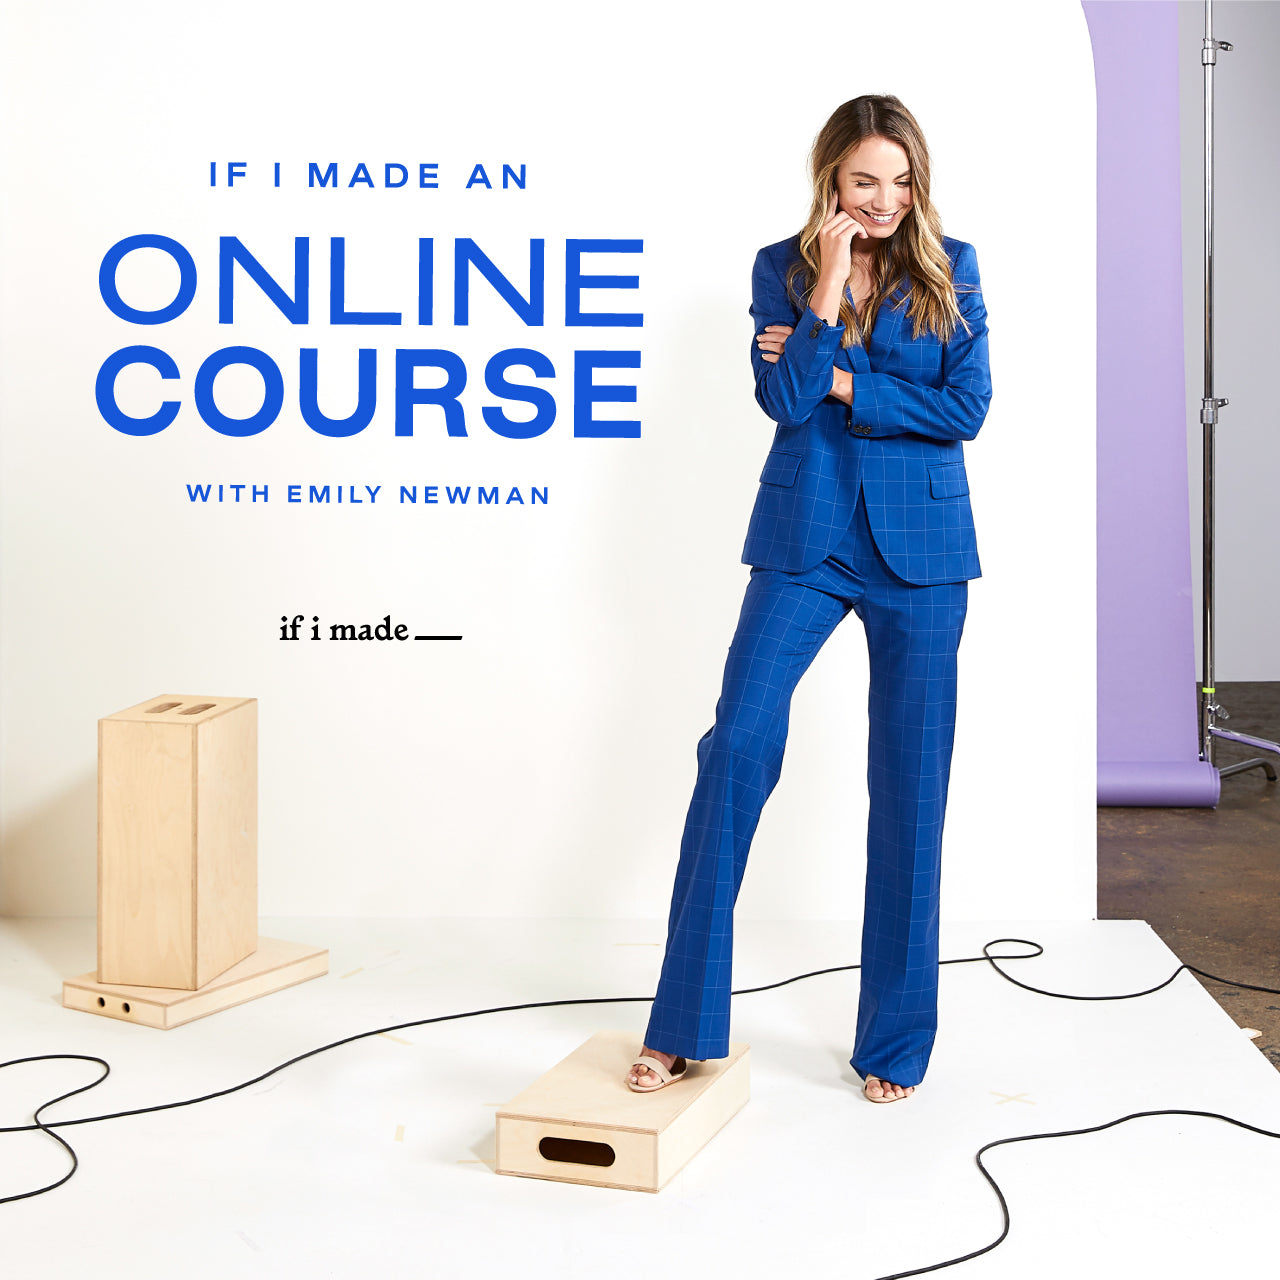 Sale Payment Plan: If I Made an Online Course - 13 Payments of $99